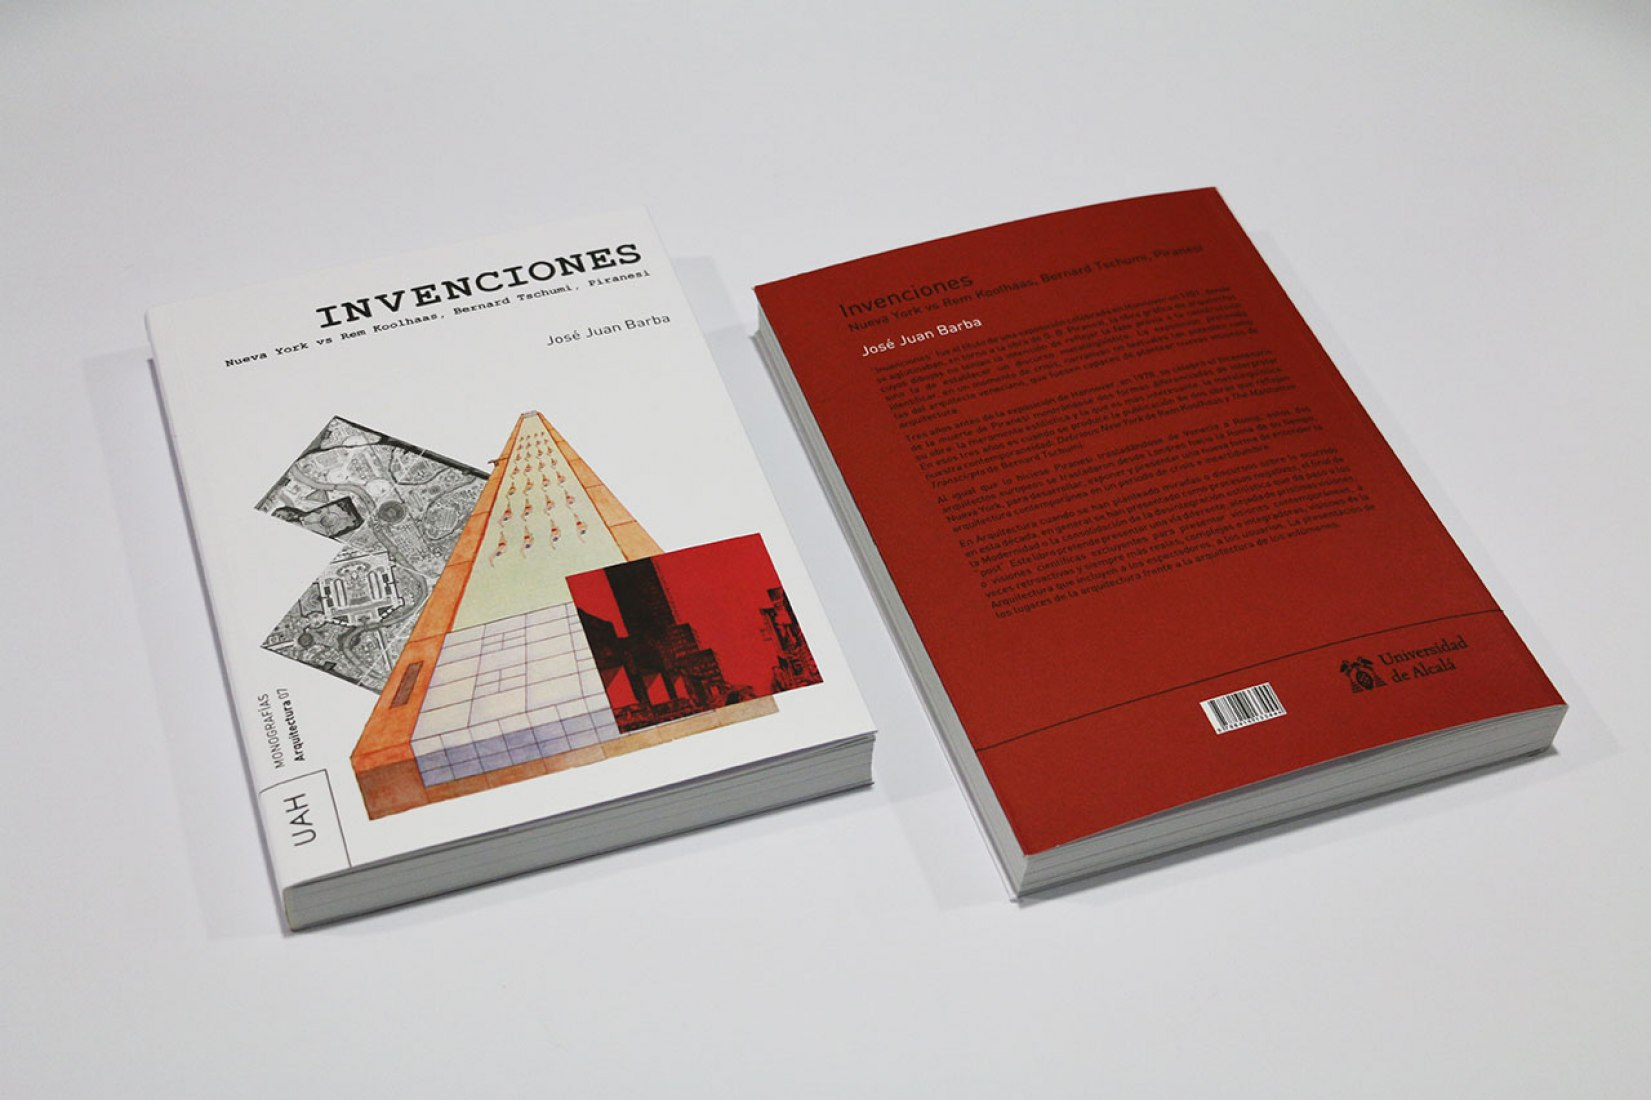 Cover and Back Cover Book. Invenciones: Nueva York vs. Rem Koolhaas, Bernard Tschumi, Piranesi, by José Juan Barba. Photograph © METALOCUS.